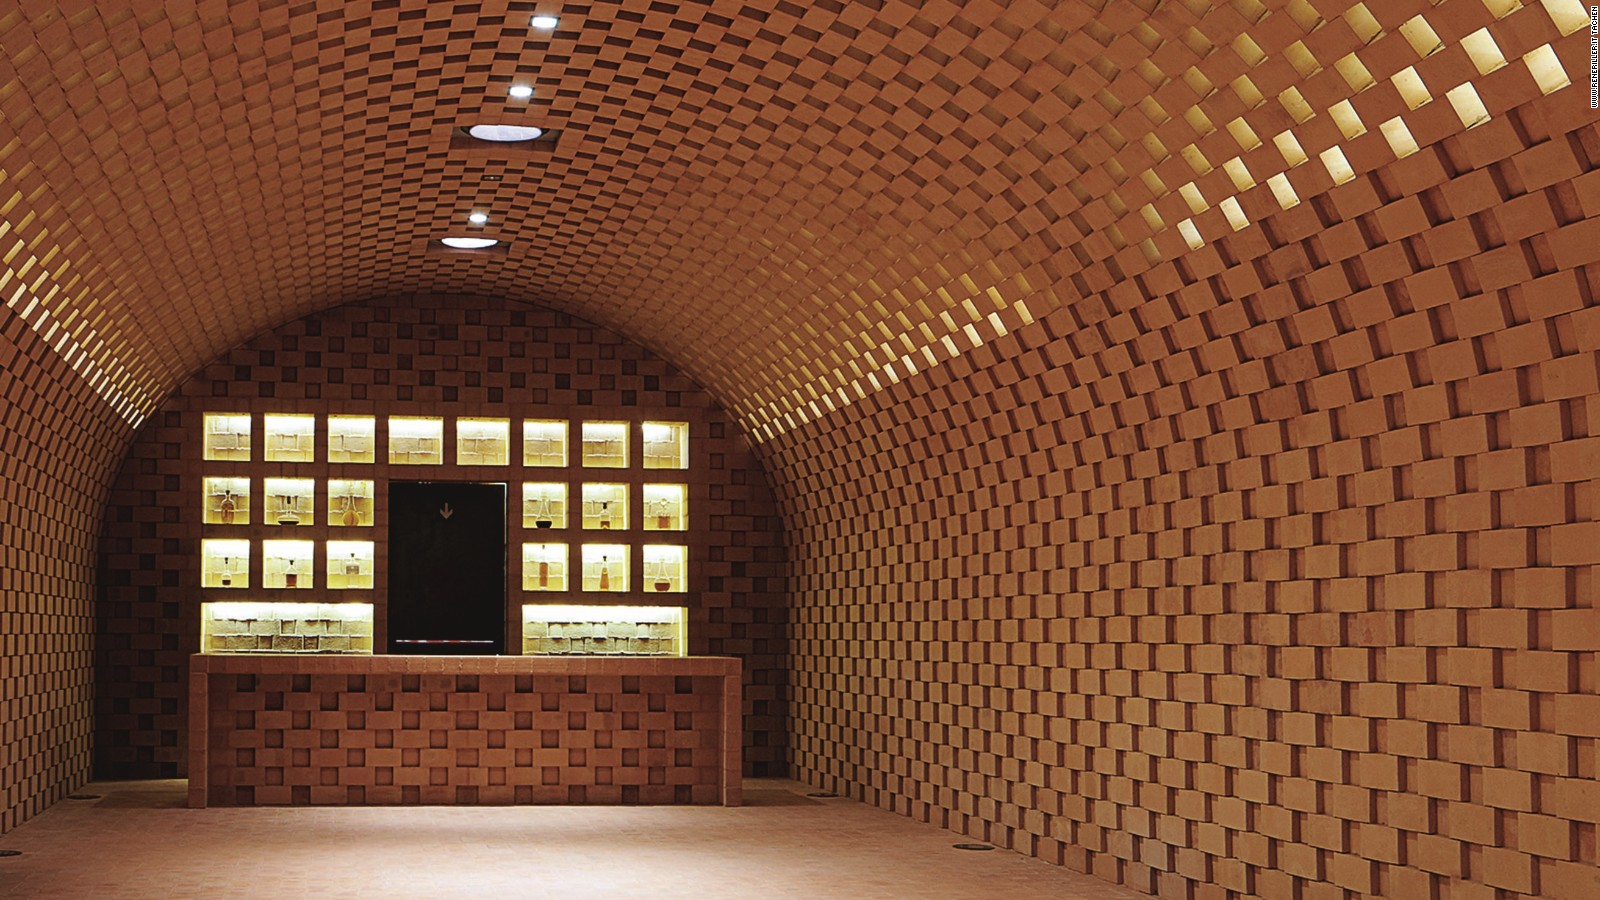 The worlds best contemporary brick buildings cnn style dailygadgetfo Image collections